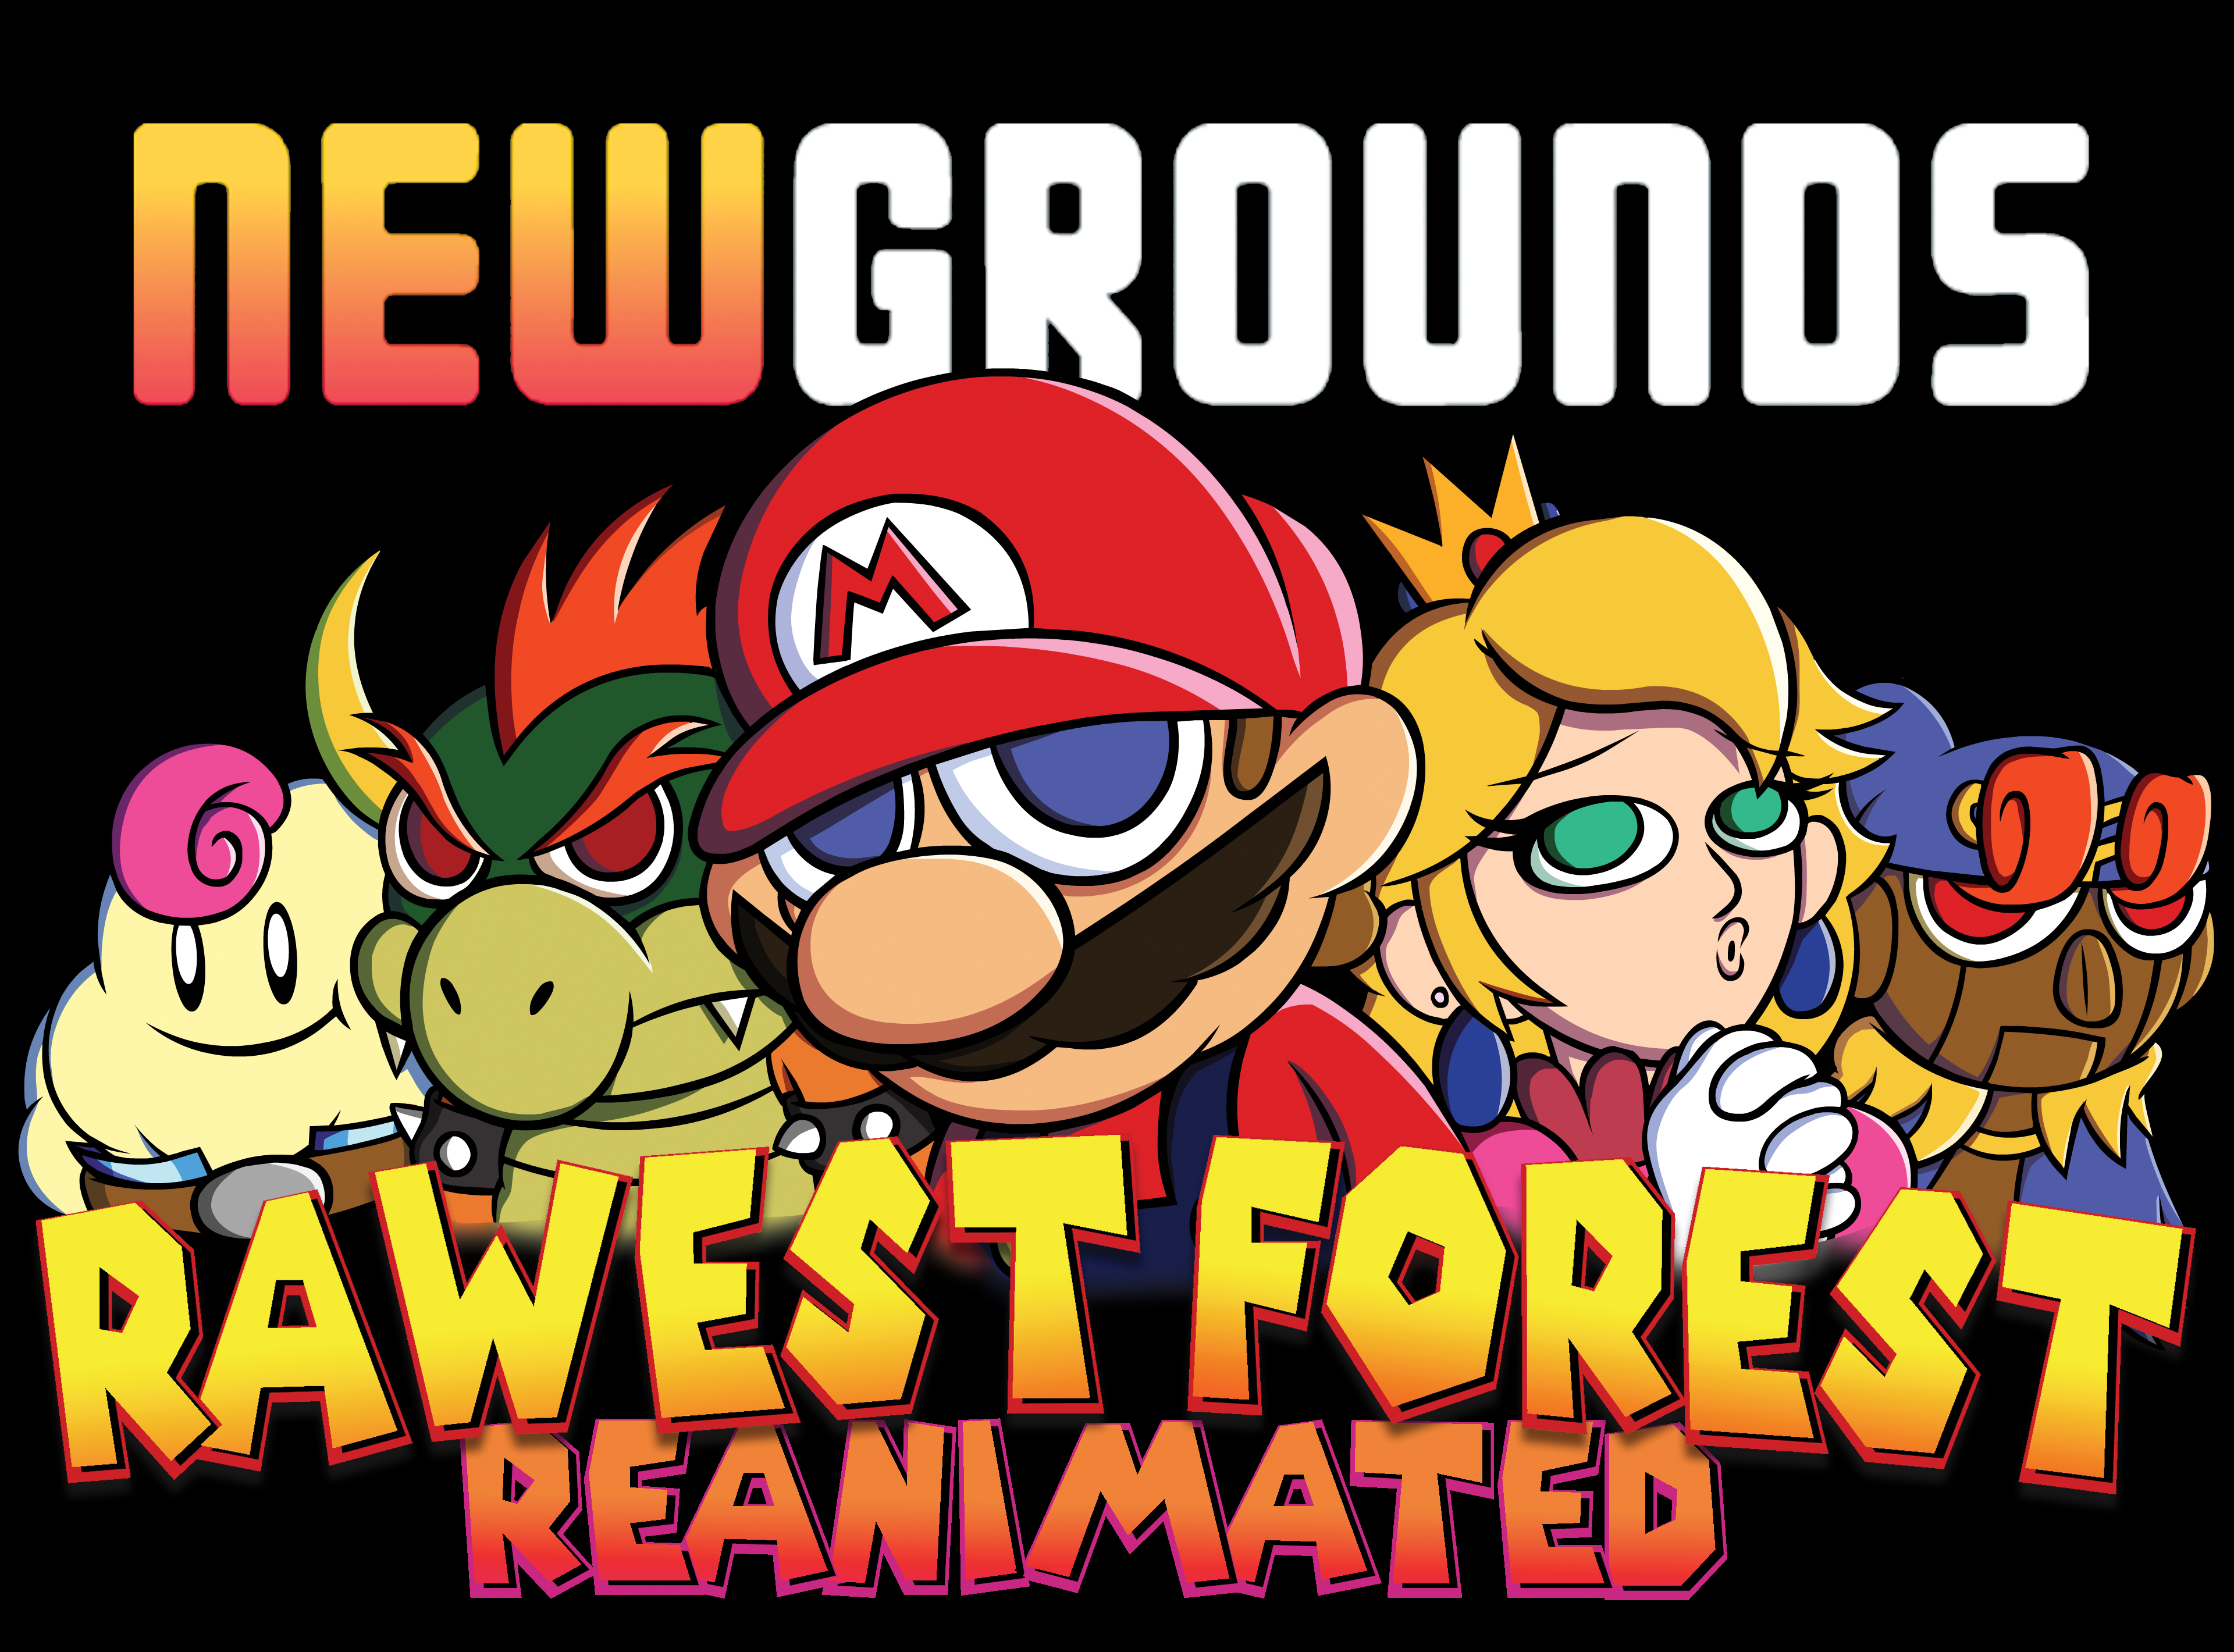 Rawest Forest Reanimated Collab Logo